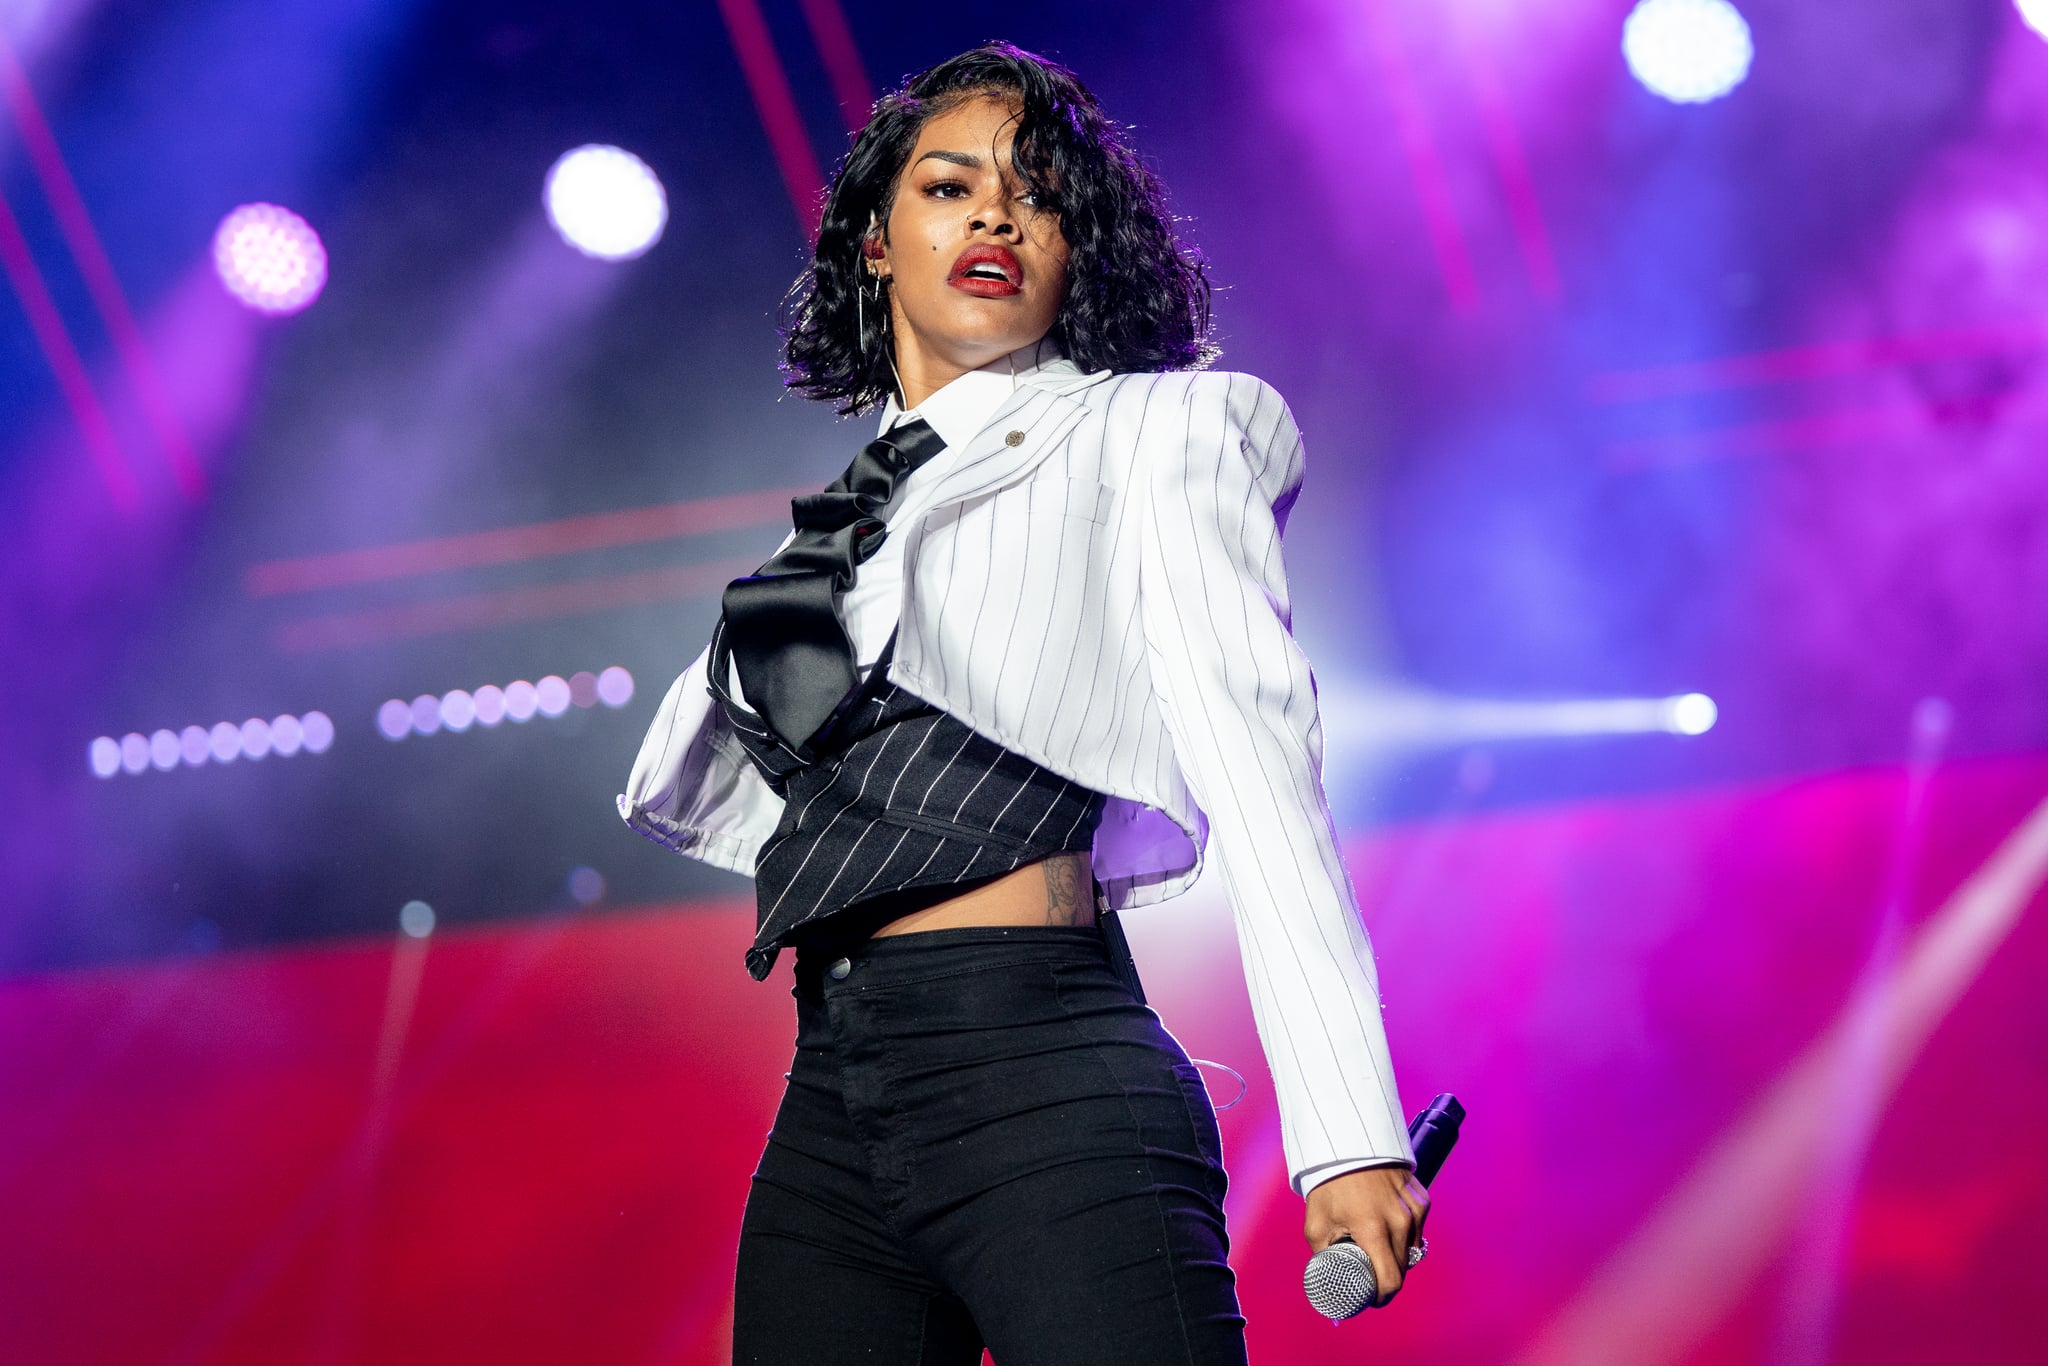 Teyana Taylor Clarifies Her Decision To Leave Music – See Her Video